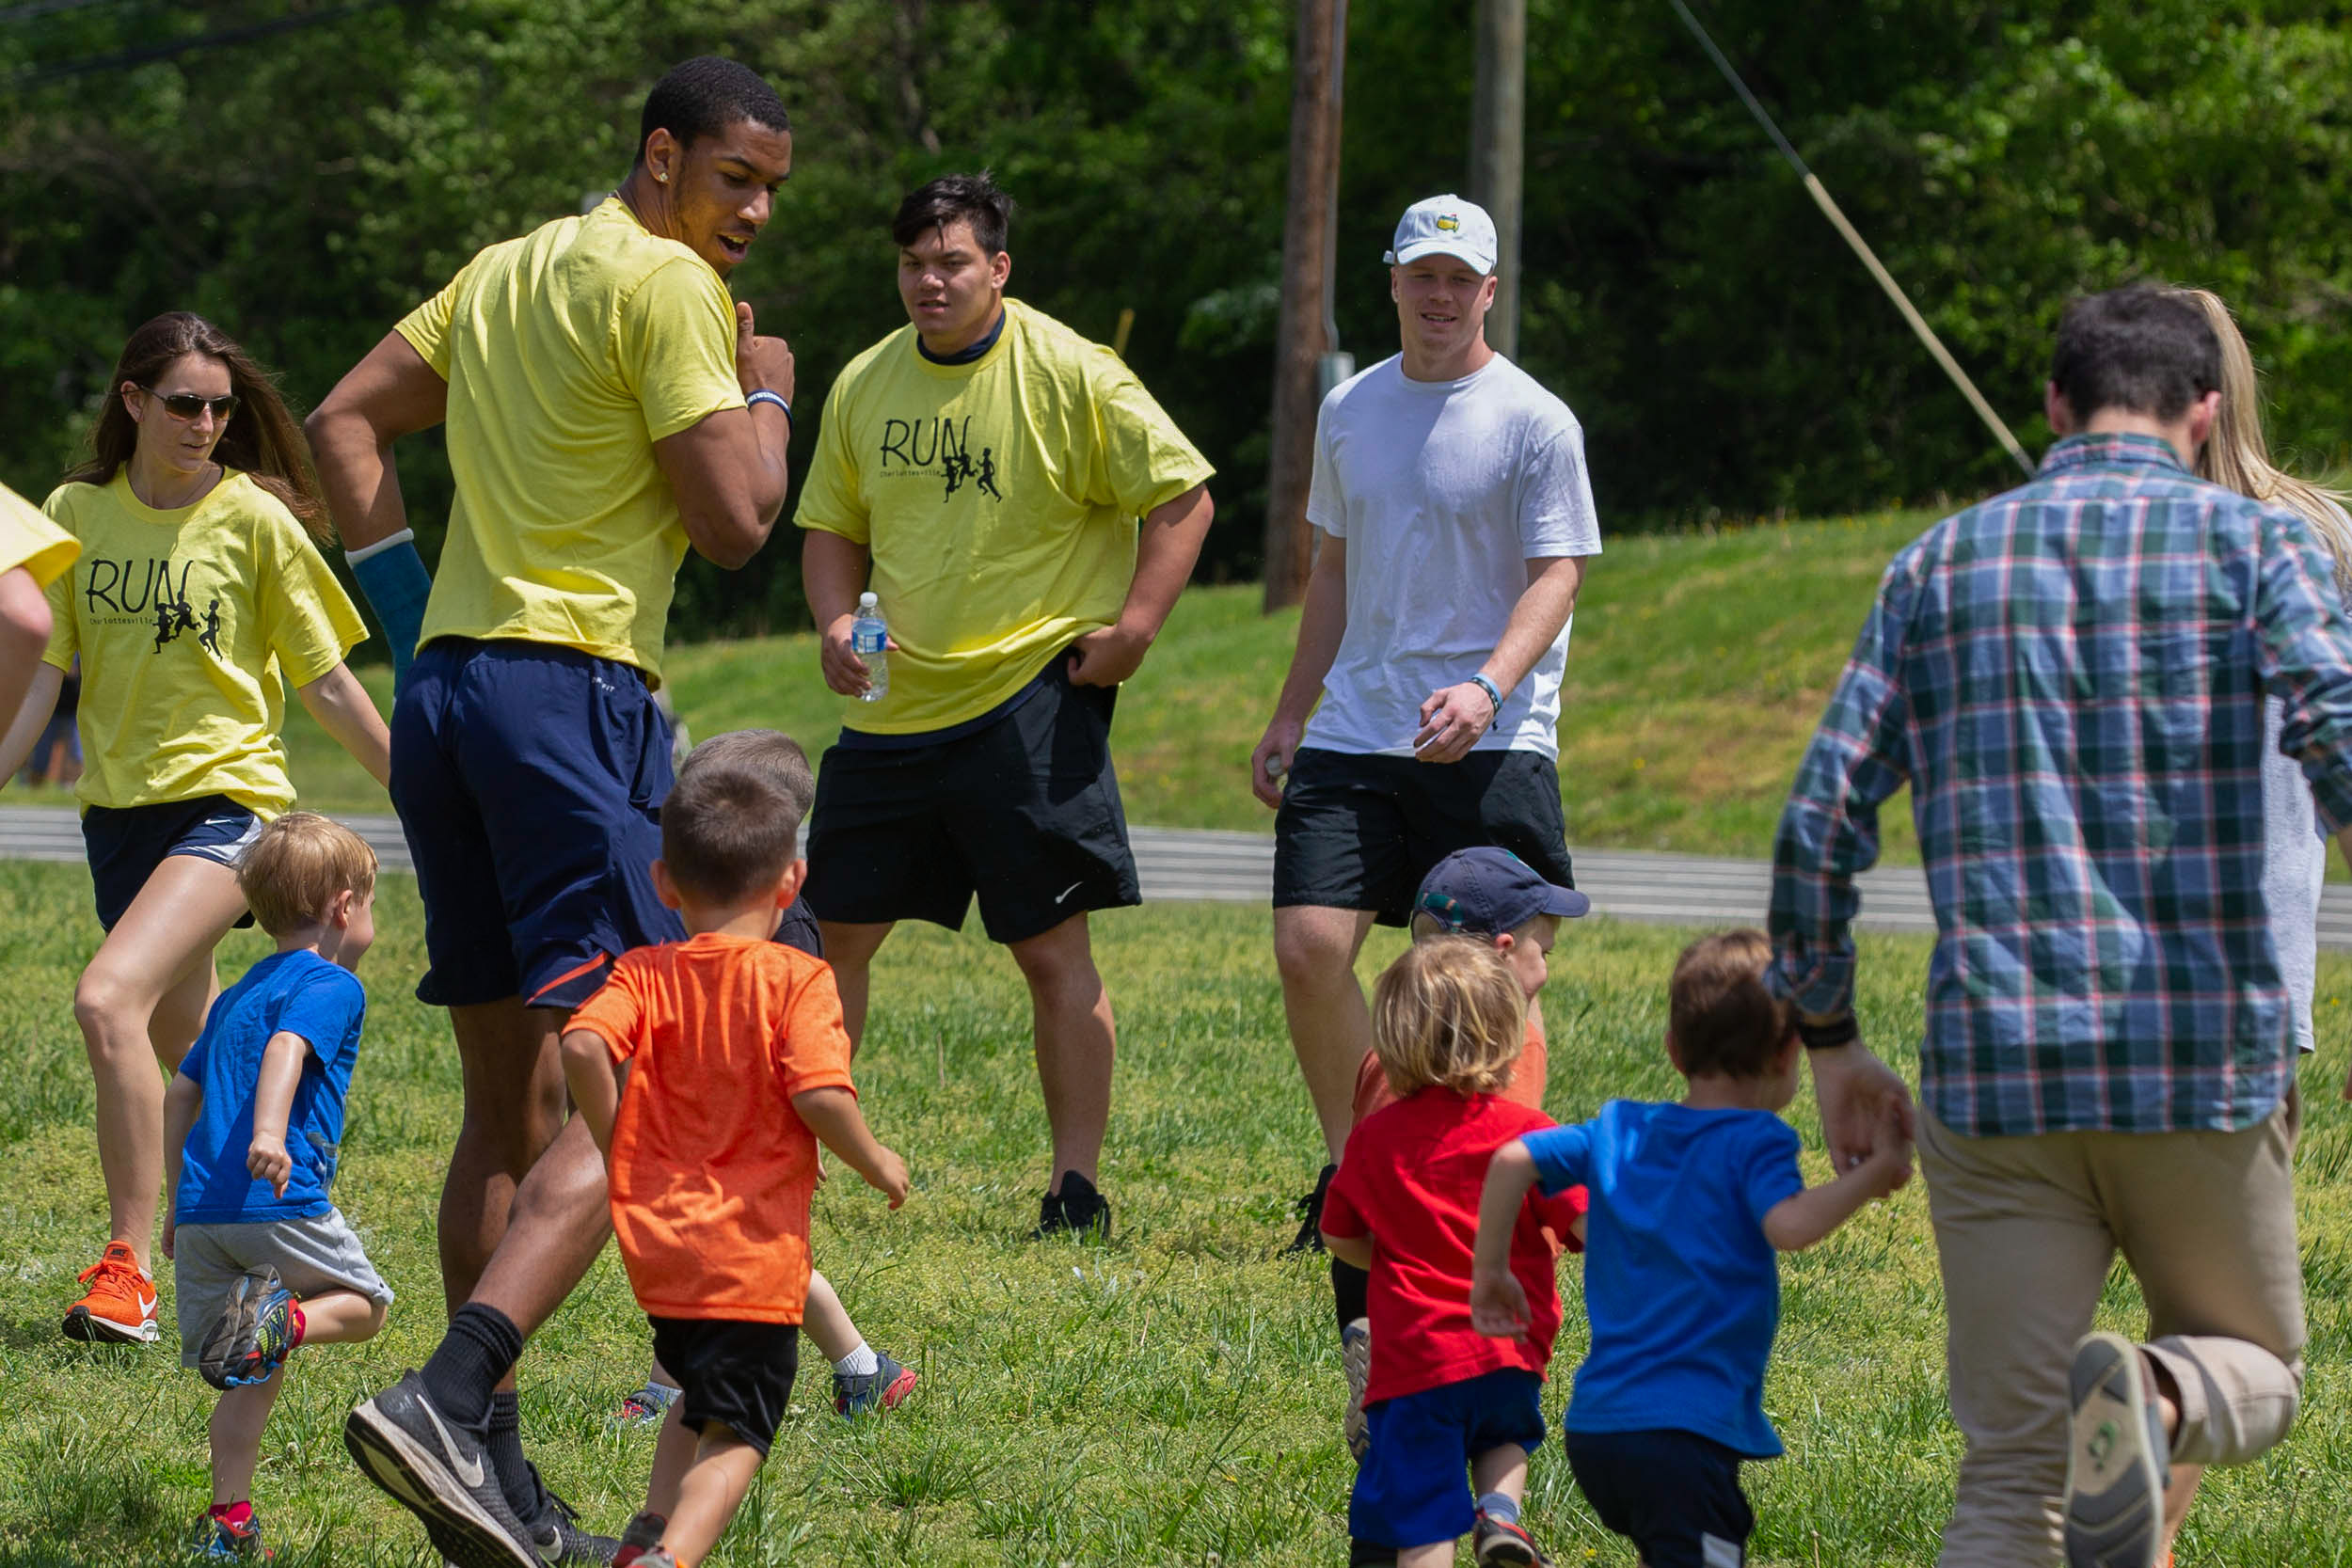 Volunteers included UVA football player Charles Snowden, shown here in an intense game of tag.